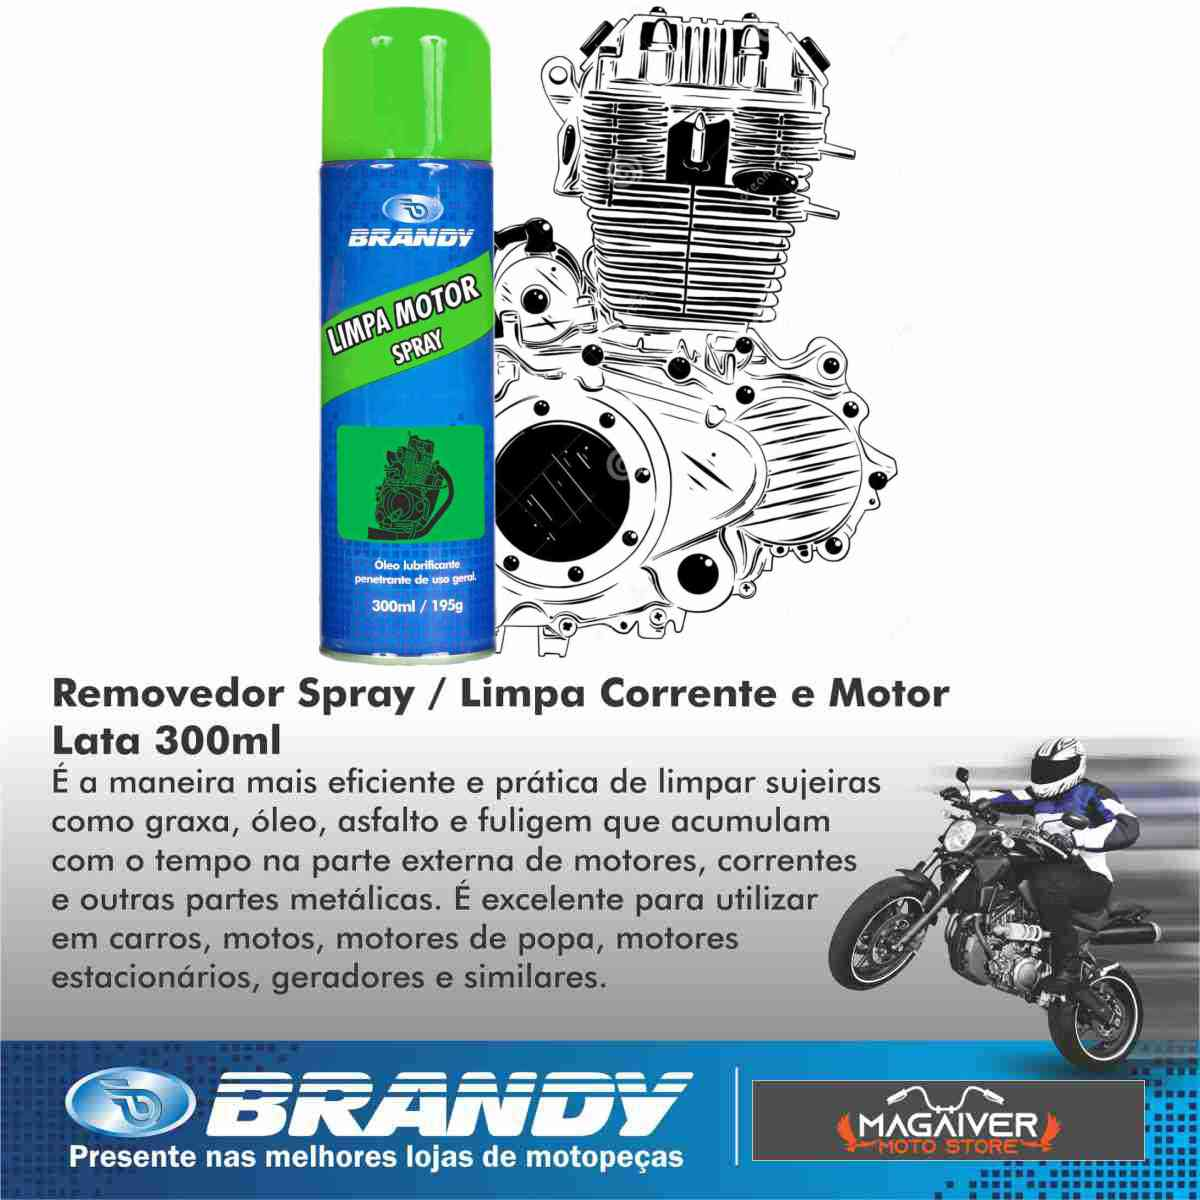 KIT 1 GRAXA MOTO BRANDY SPRAY 300ml + 1 REMOVEDOR LIMPADOR CORRENTE E MOTOR 300ml